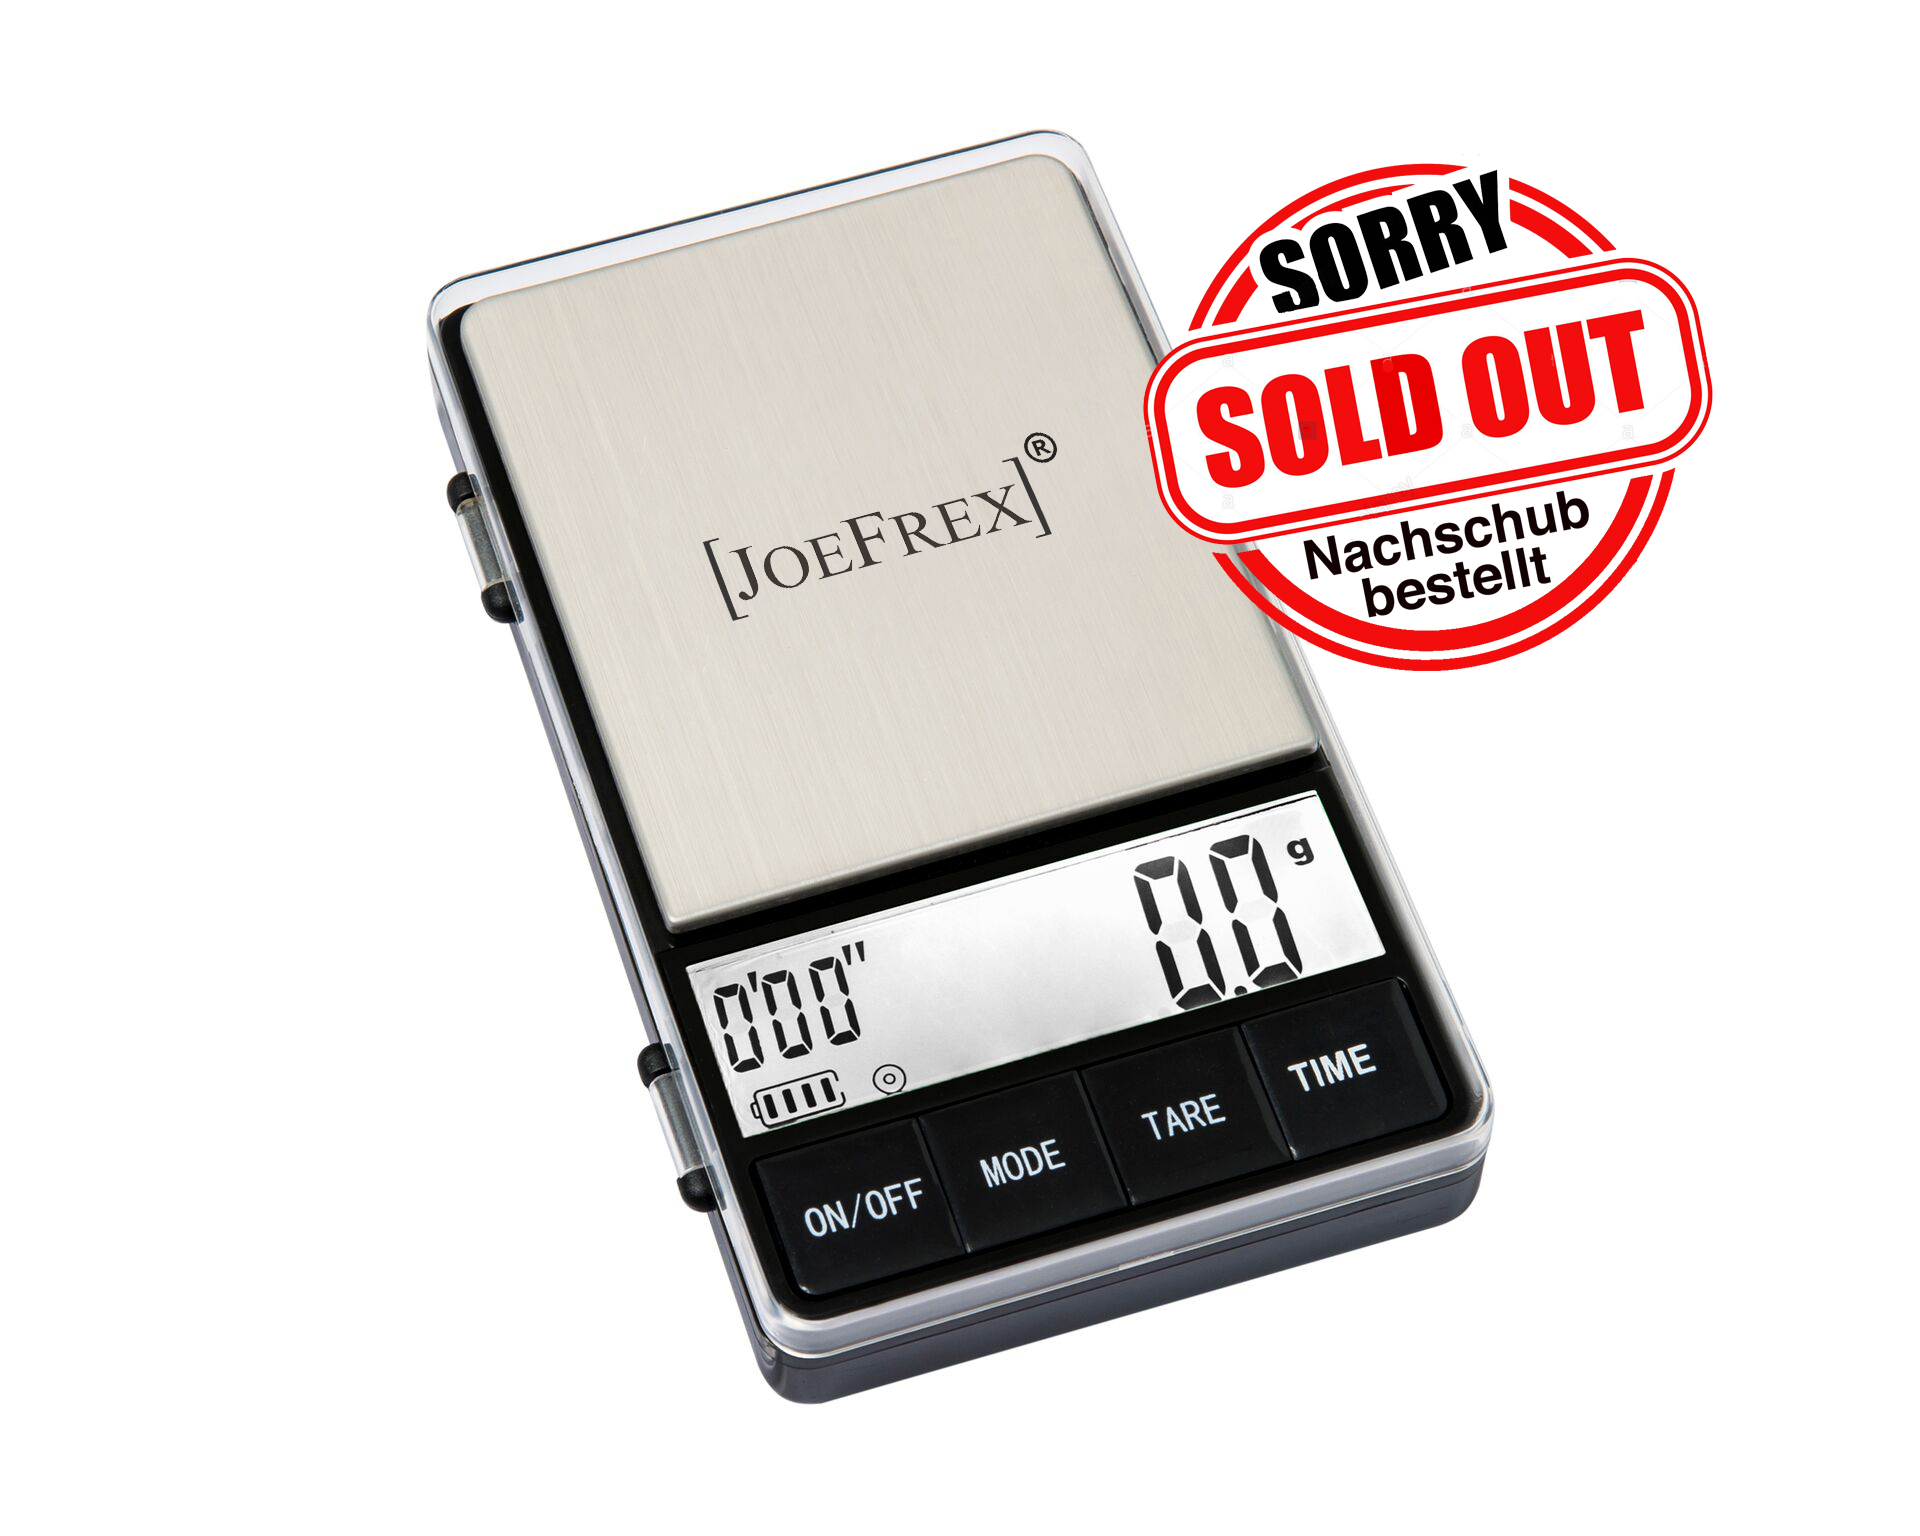 Joe Frex Digital Coffee Scale with Timer